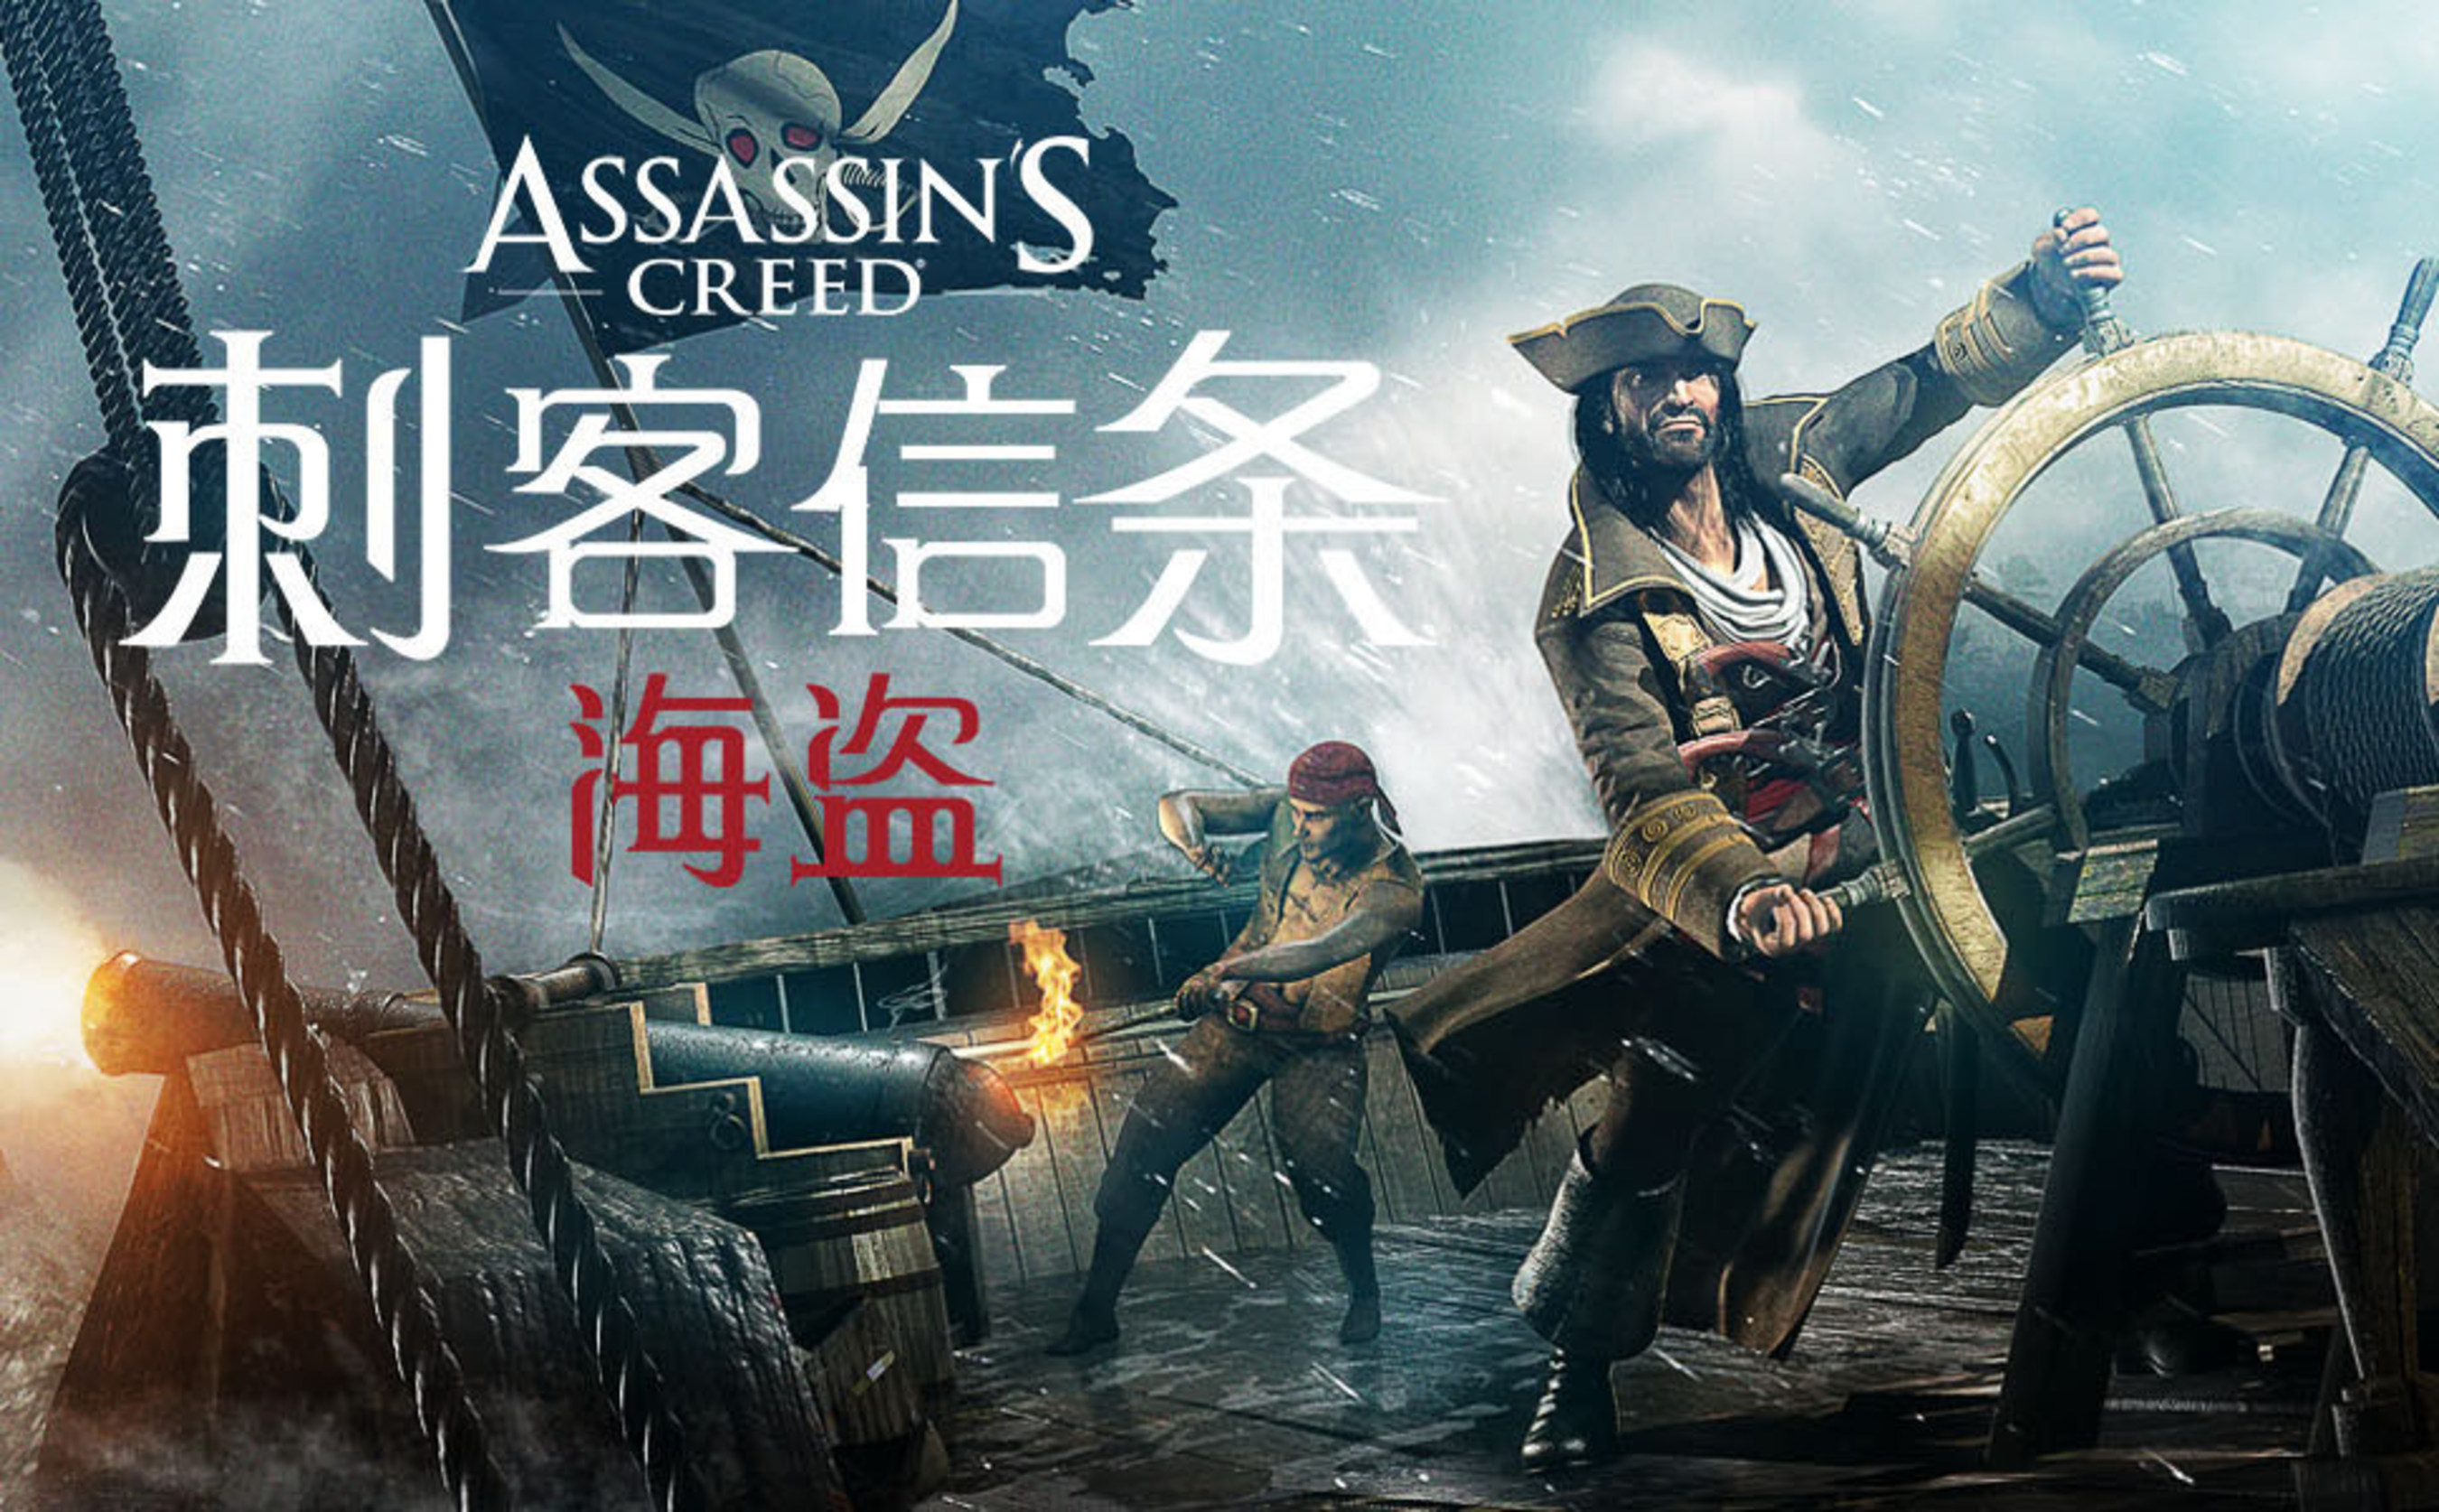 Assassin's Creed: Pirates